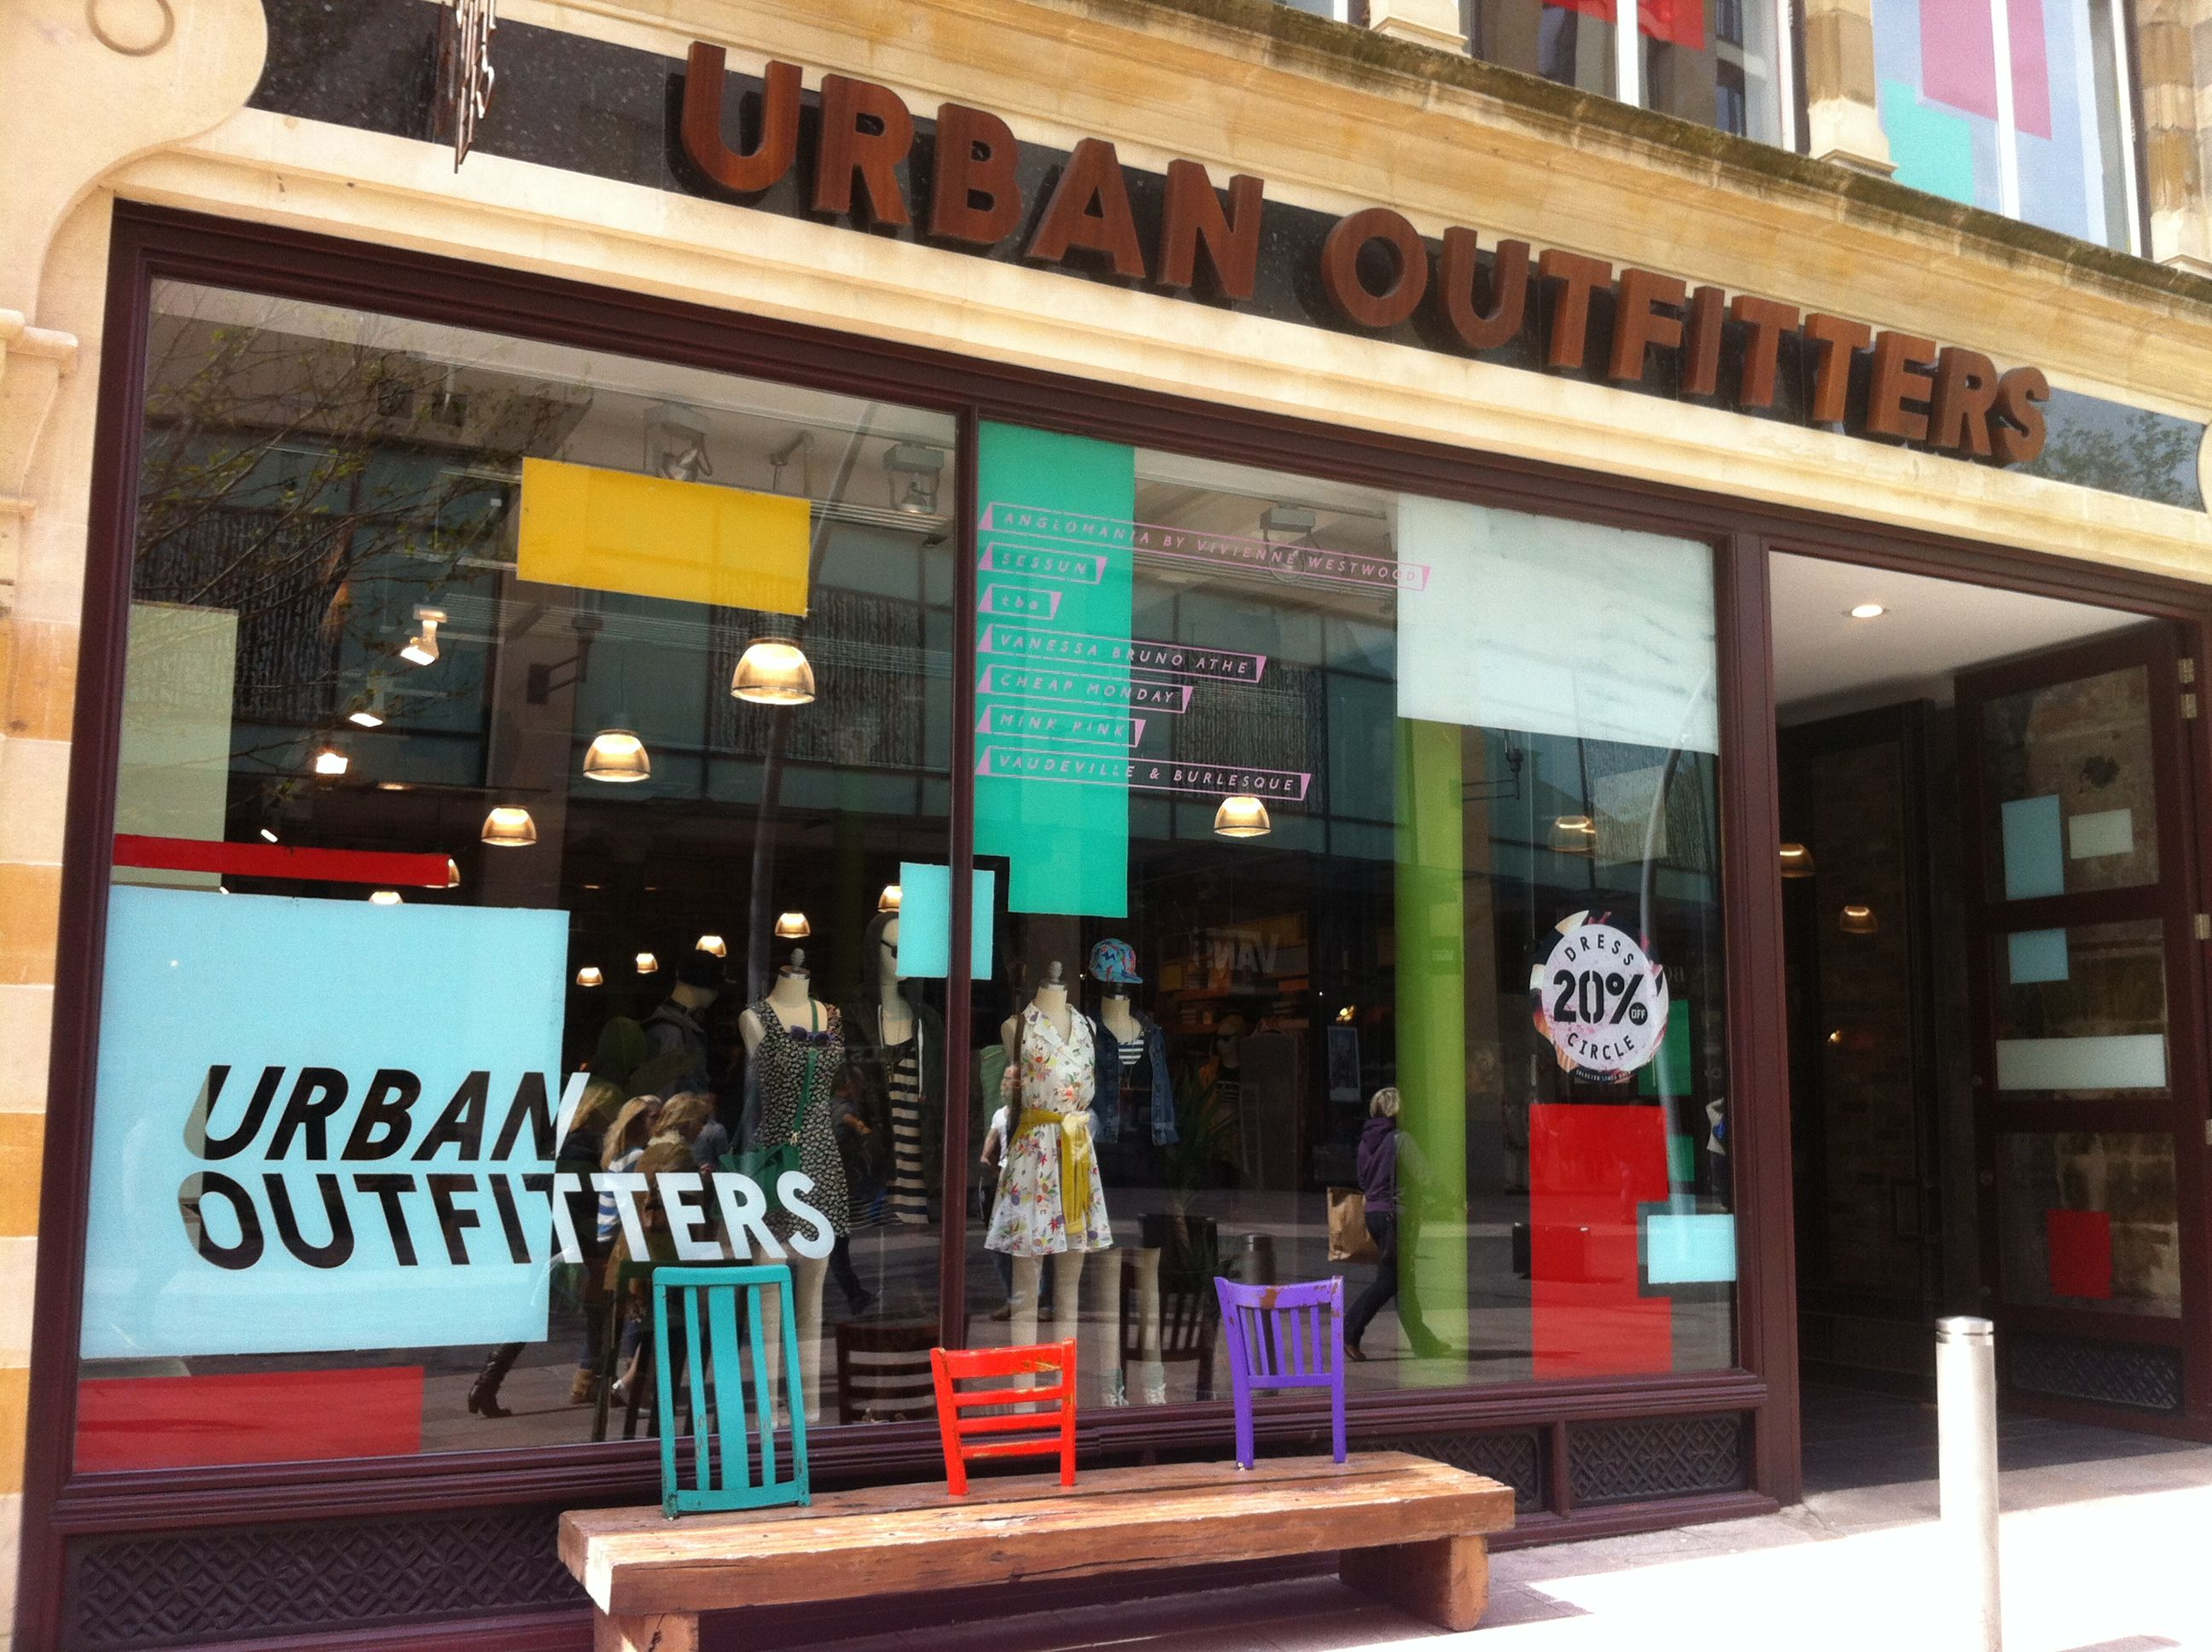 Urban Outfitters jobs hiring Near Me. Browse Urban Outfitters jobs and apply online. Search Urban Outfitters to find your next Urban Outfitters job Near Me.